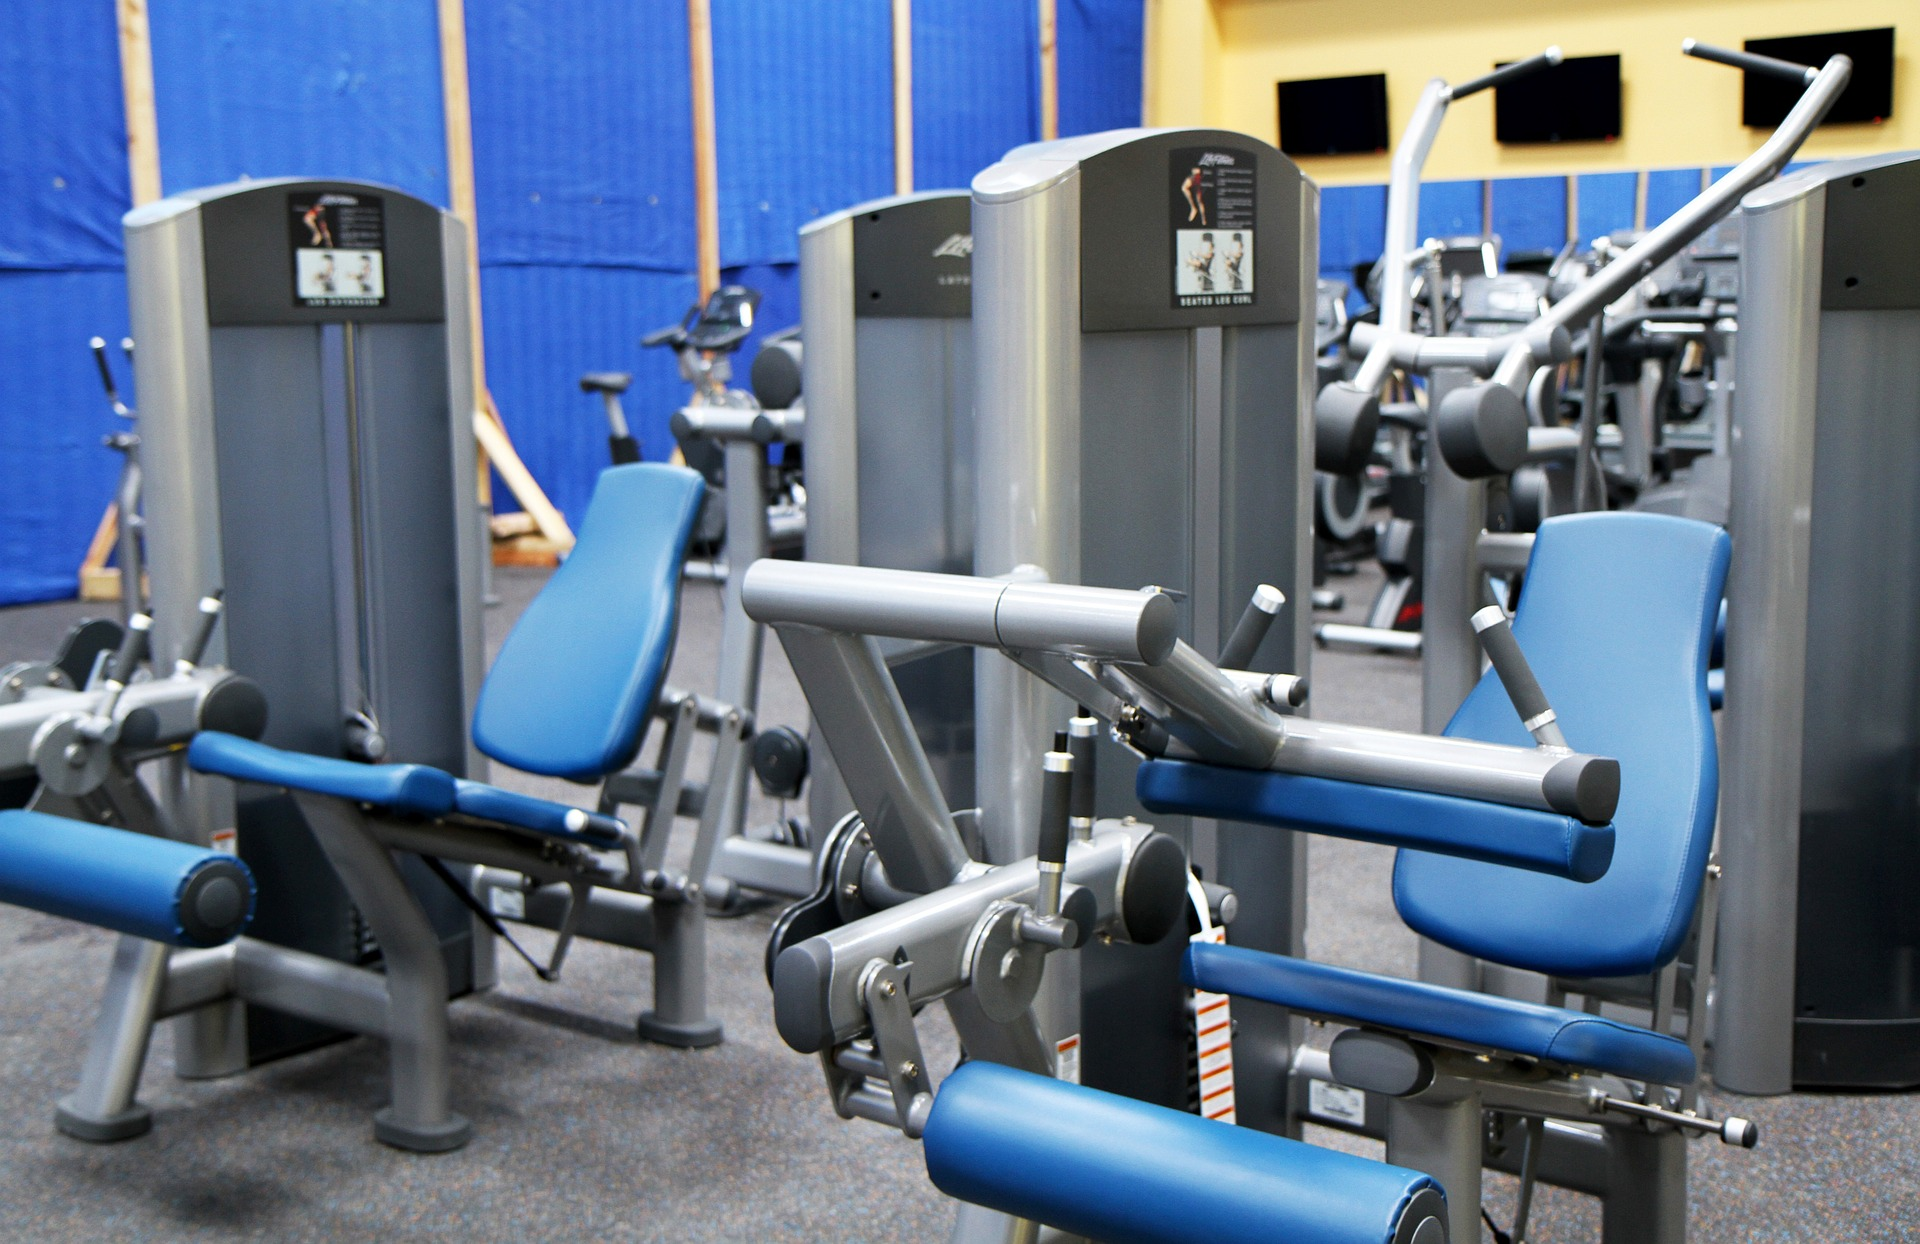 Introducing The Treadmill: What You Need To Know